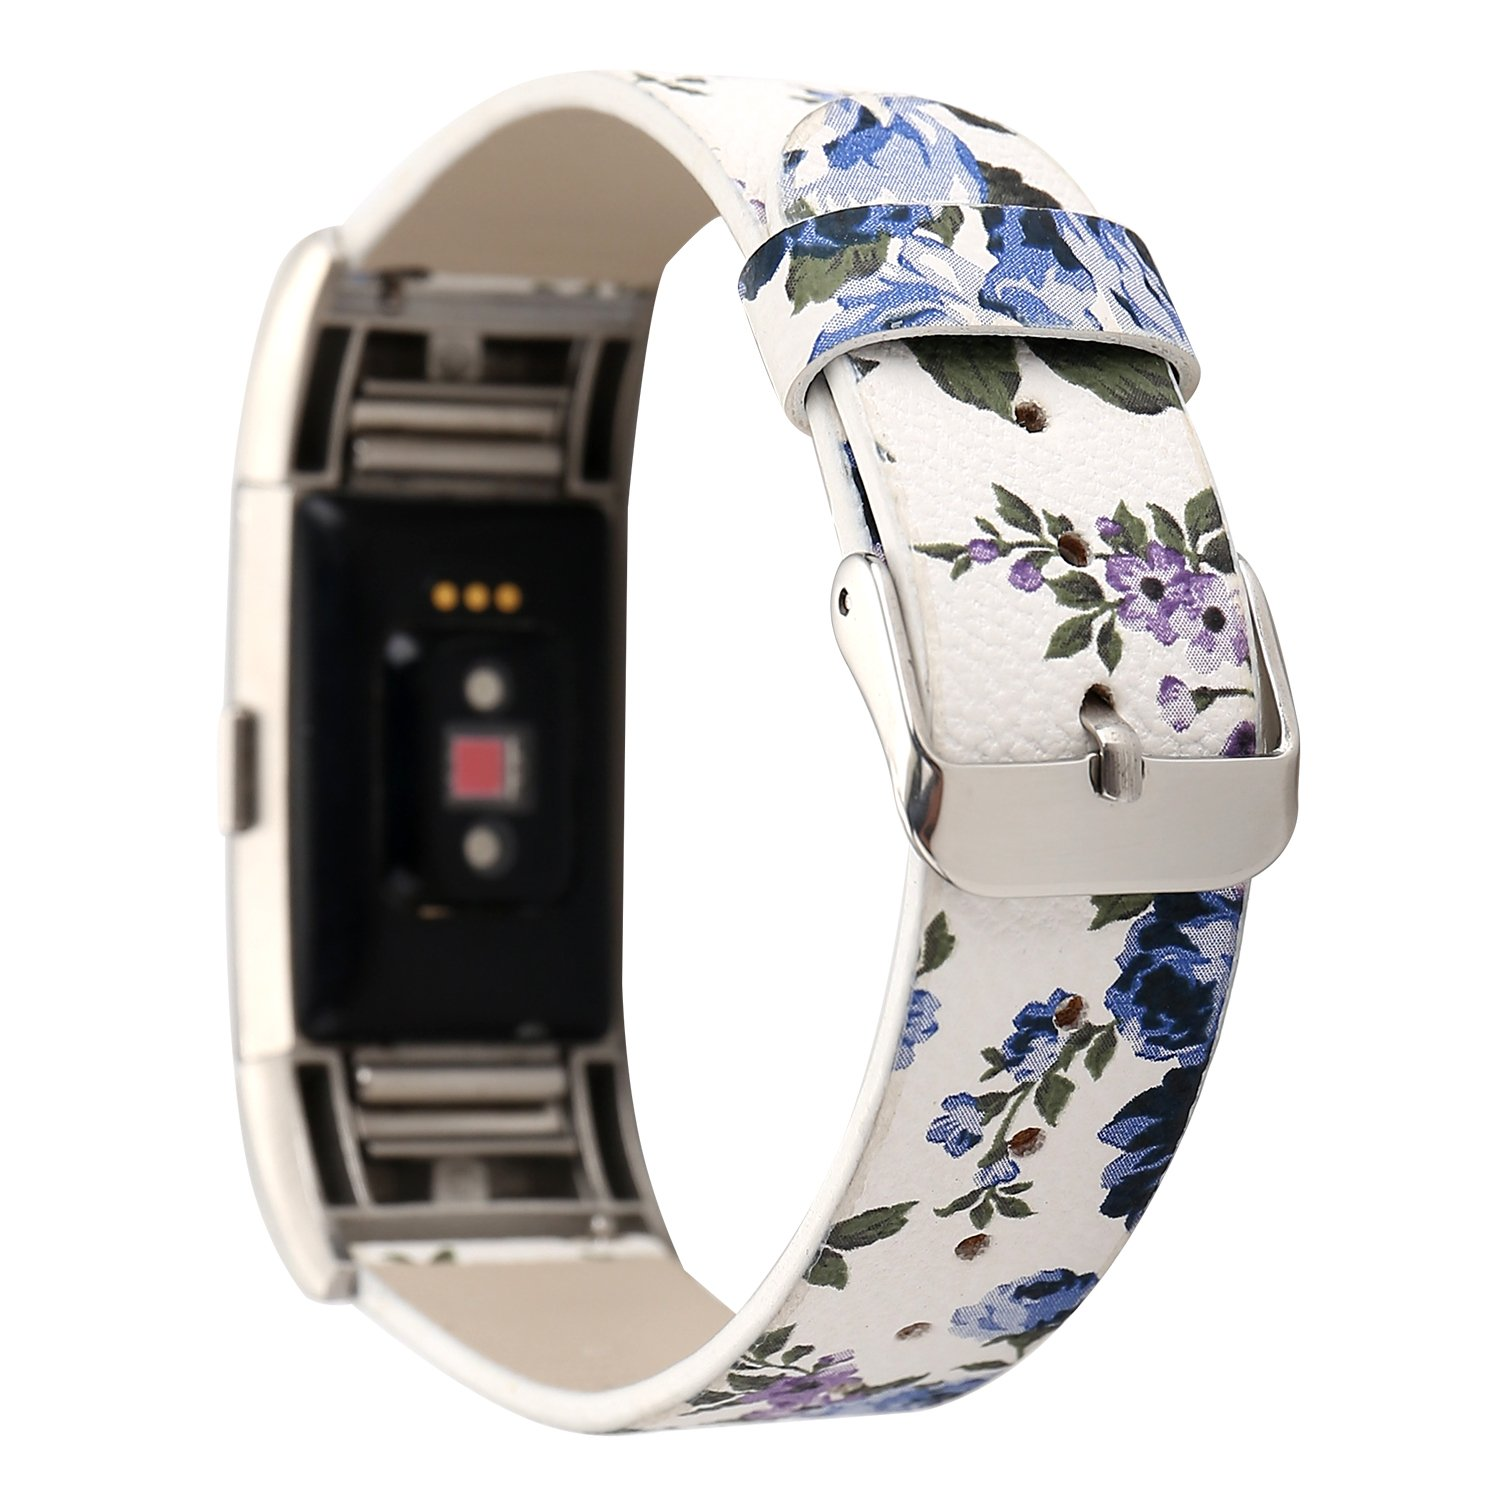 MeShow TCSHOW Compatible for Fitbit Charger 2 Band, Soft PU Leather Pastoral/Rural Floral Style Replacement Strap Wrist Band Compatible for Fitbit Charger 2 (E)